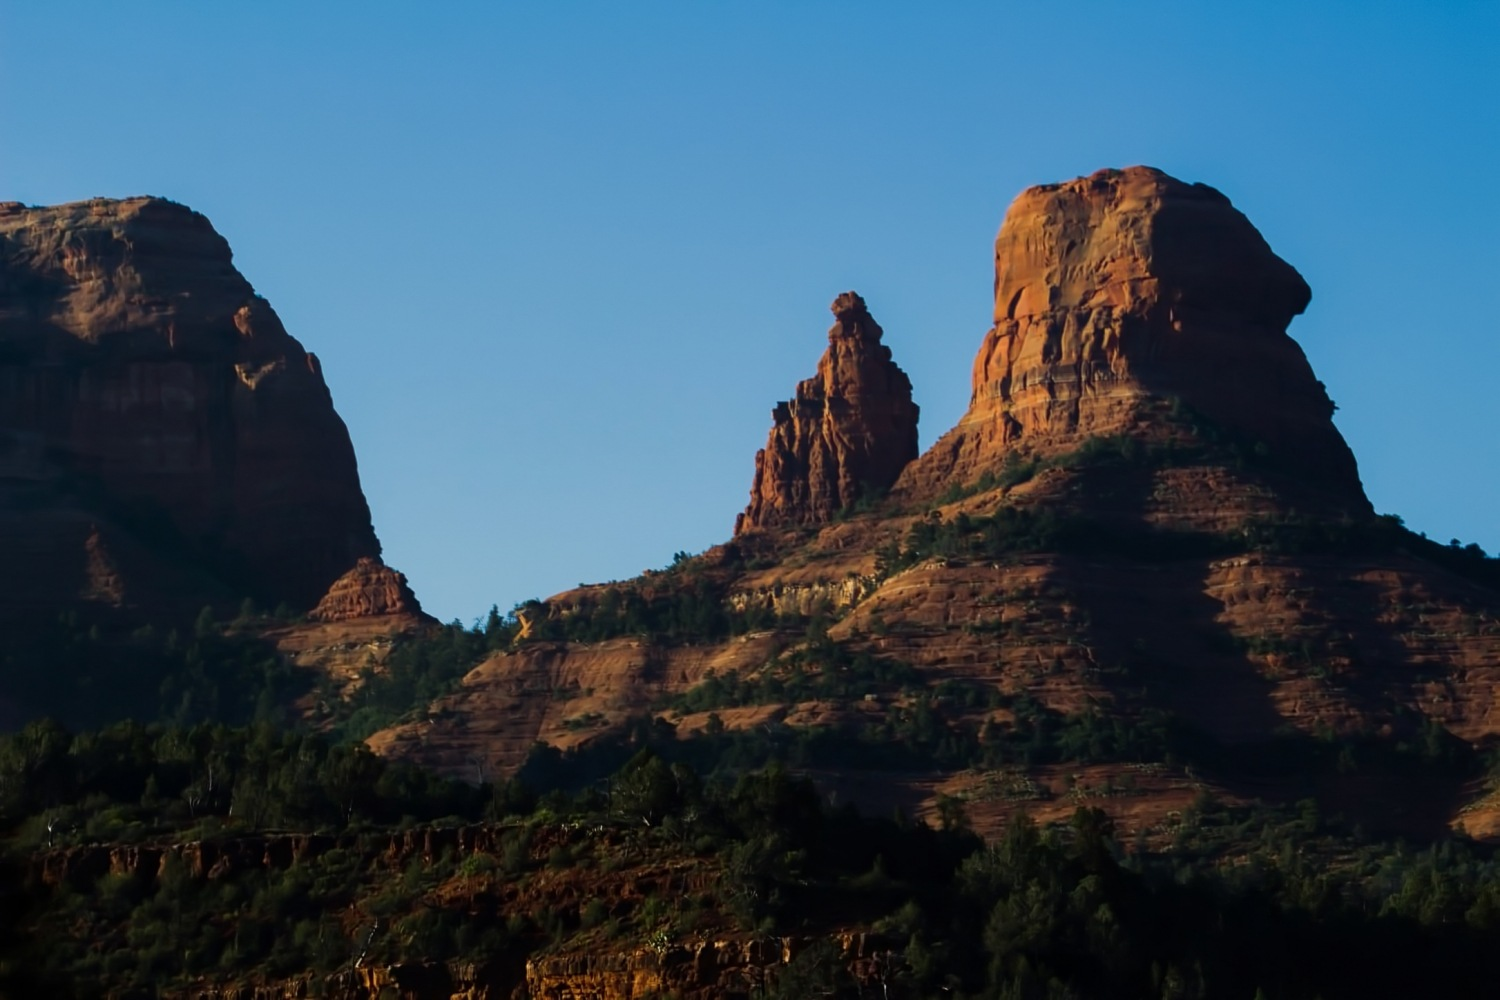 Sunrise on Red Rocks by Eric Wilson